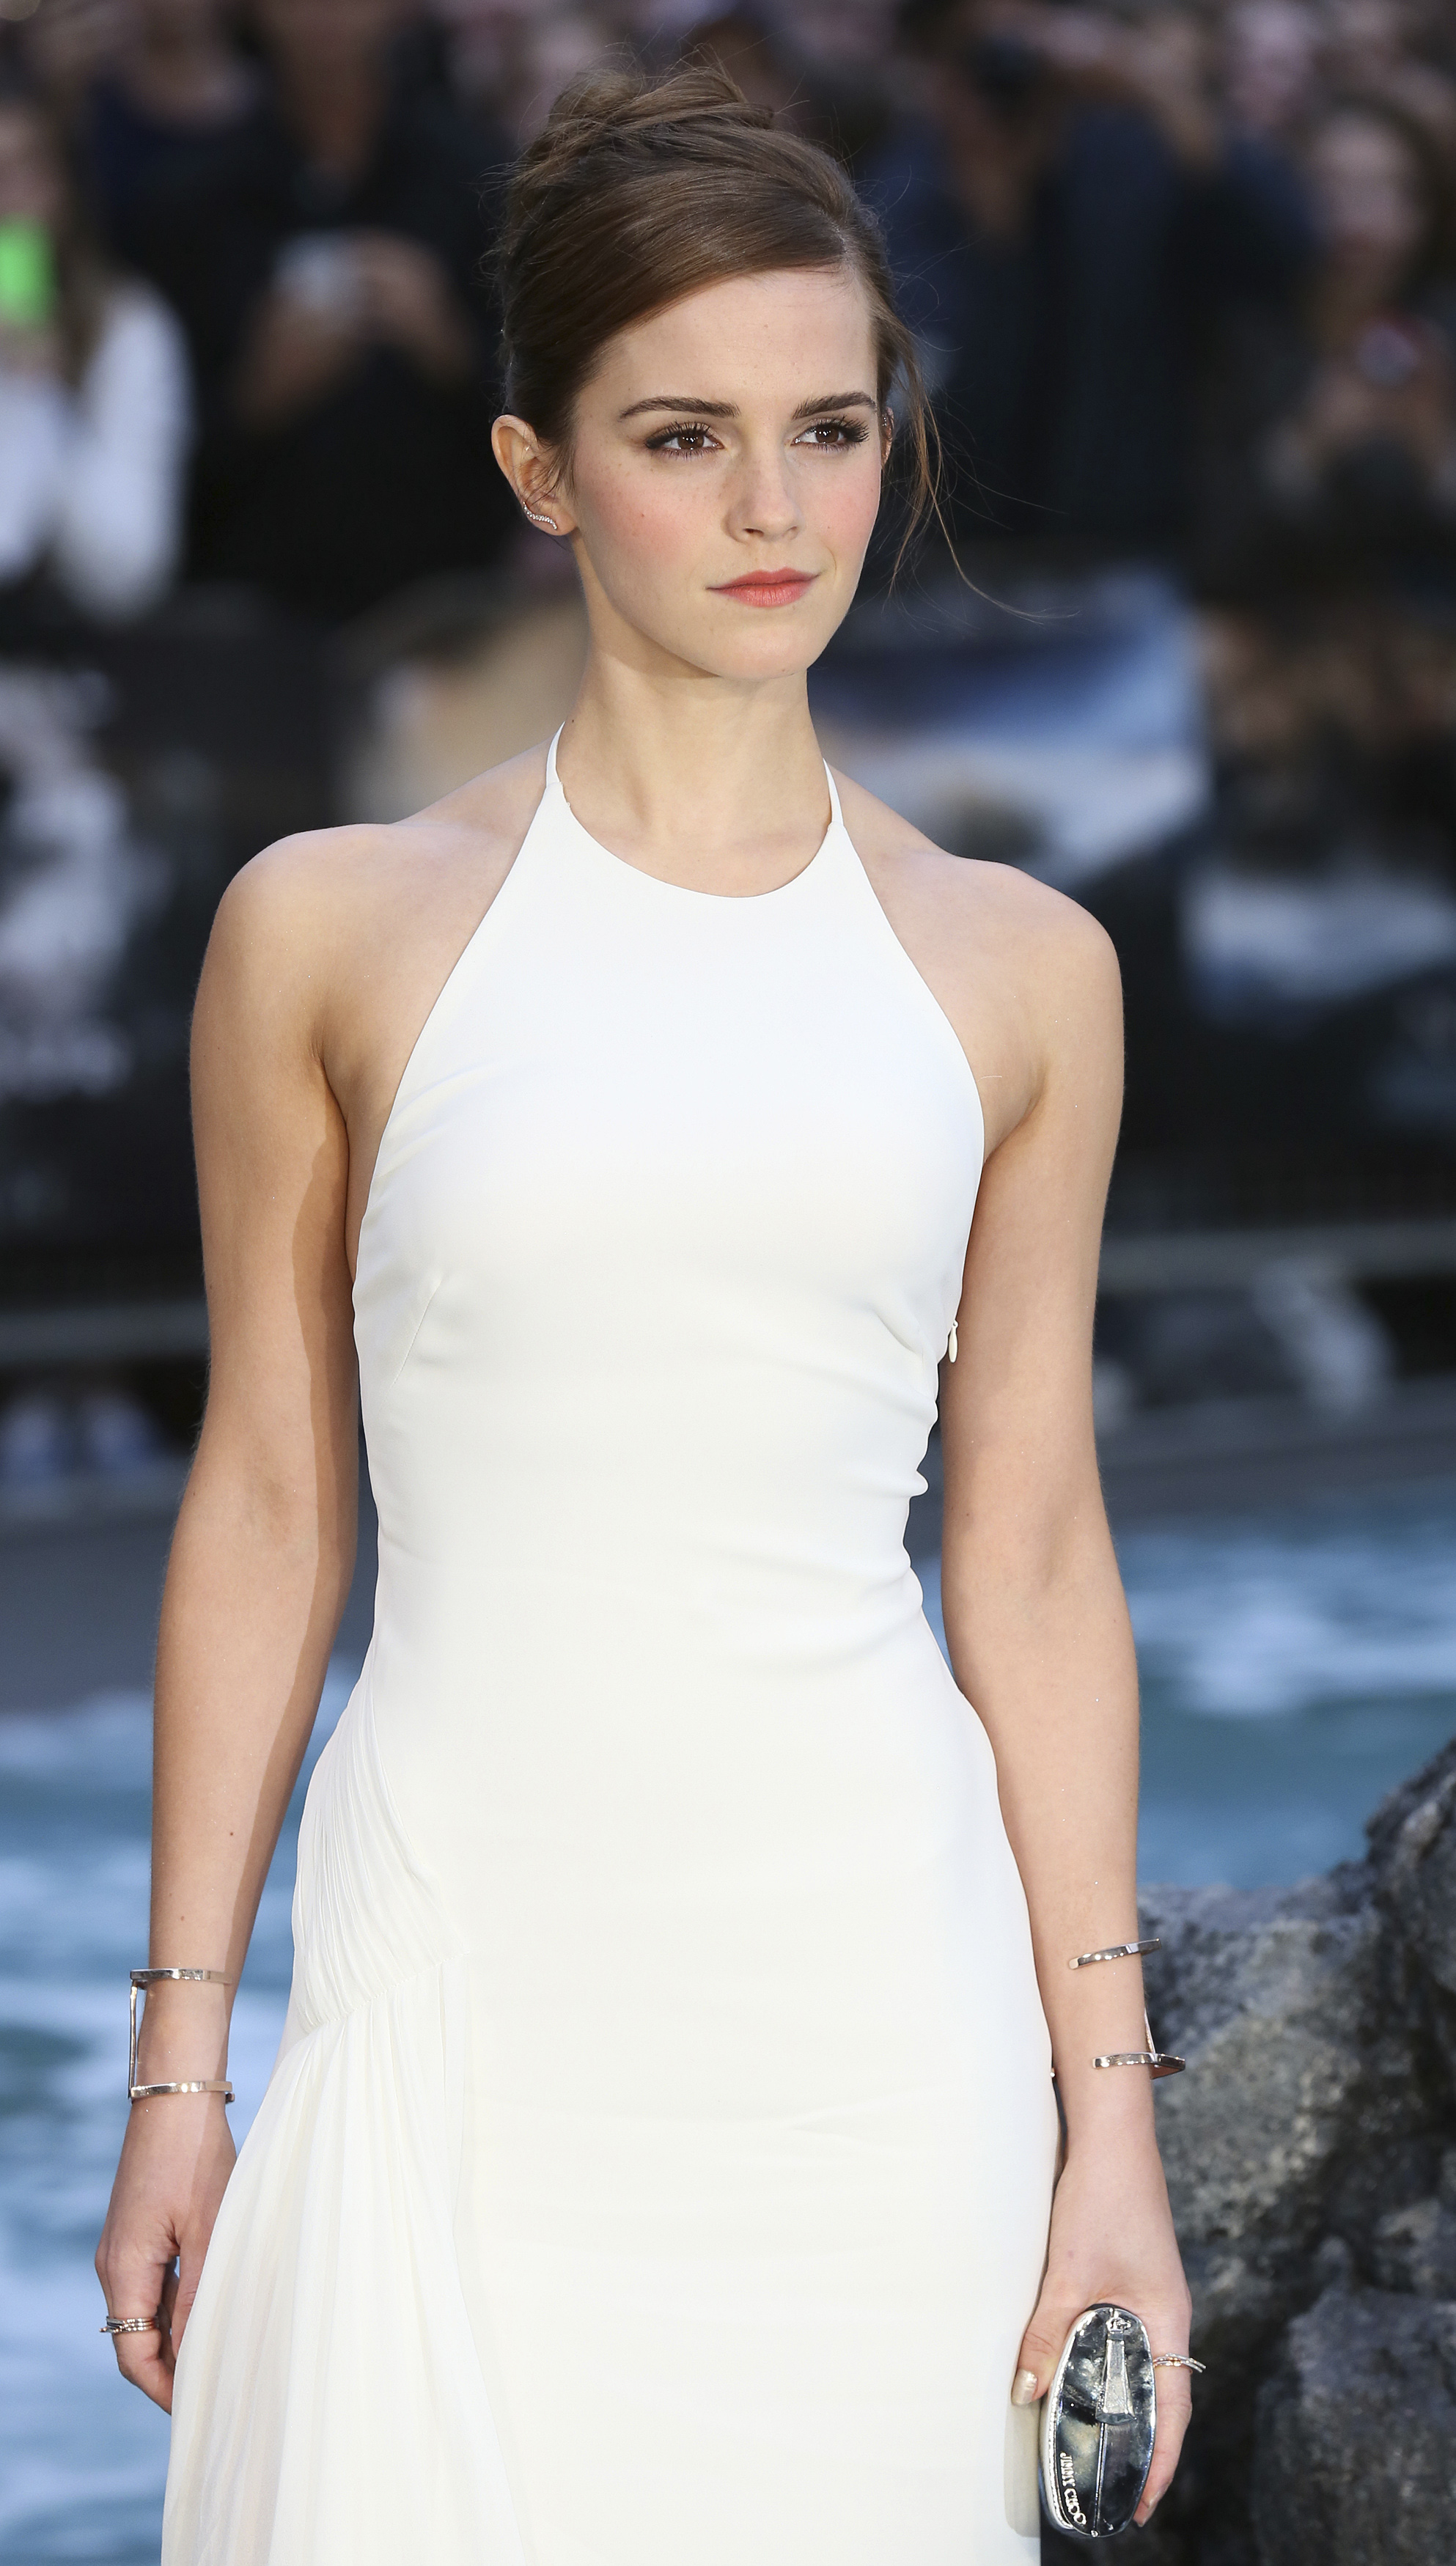 Emma Watson will reportedly appear topless in next movie